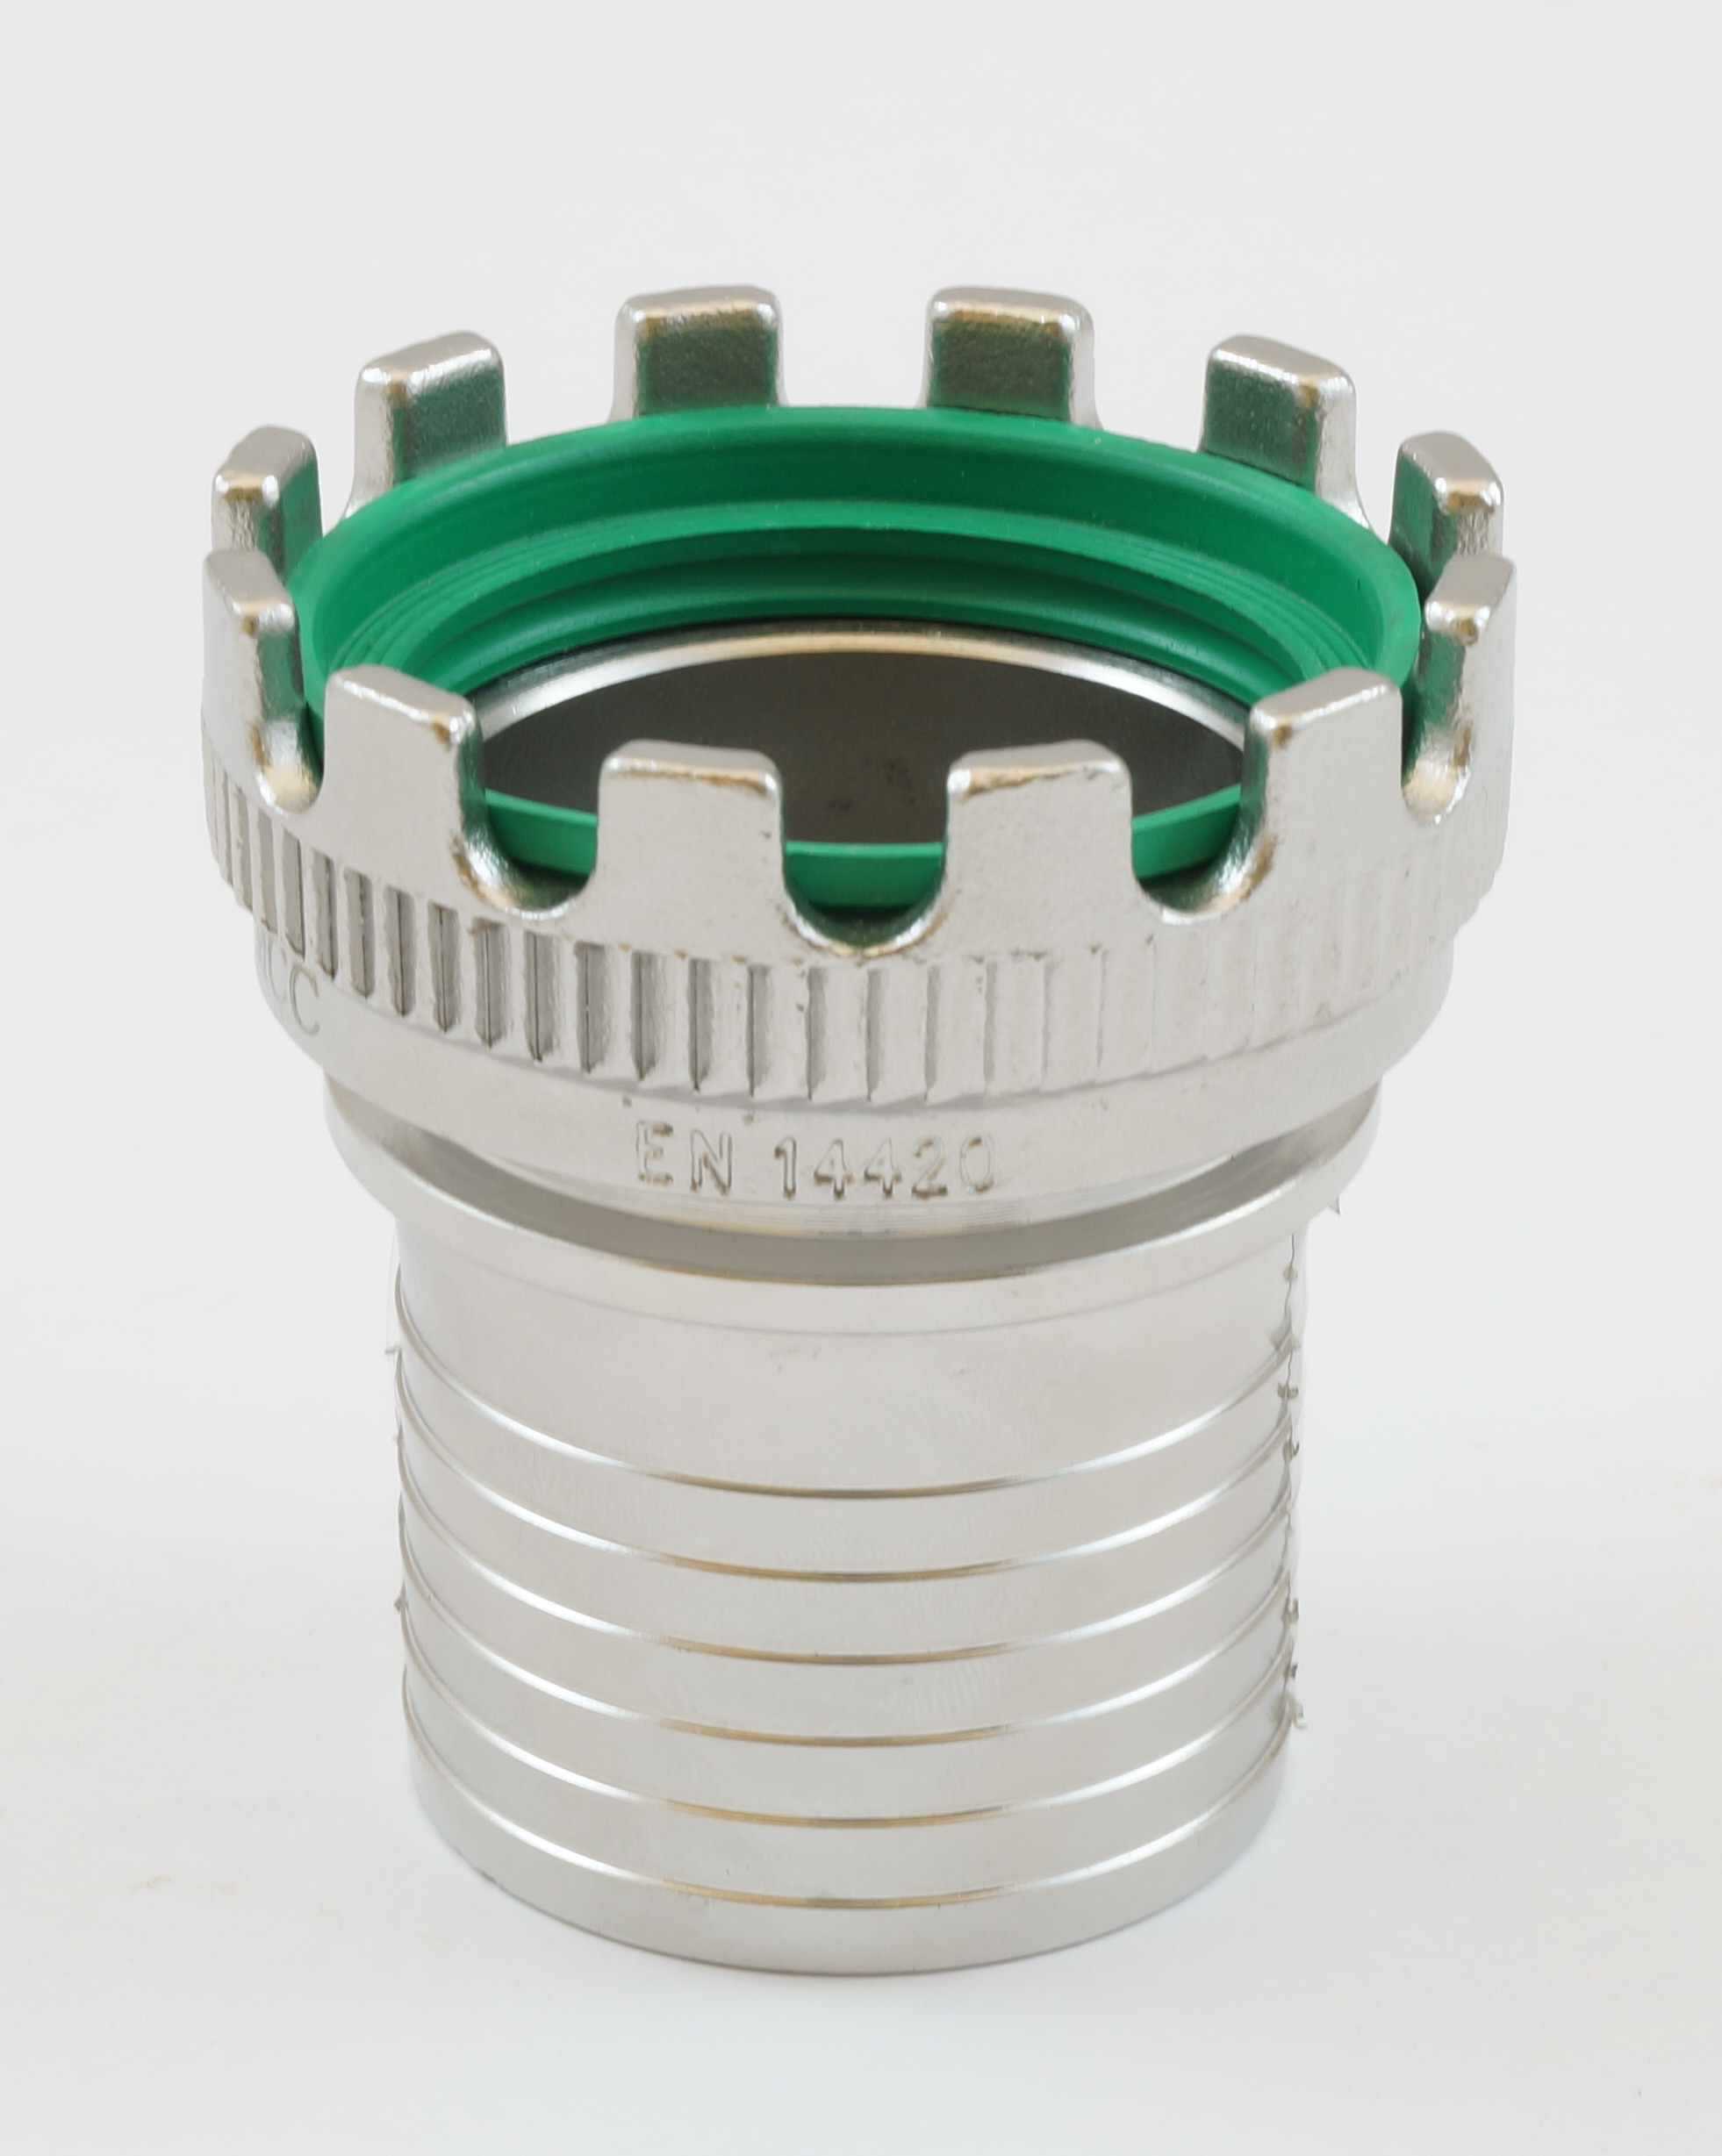 SS TW coupling serrated tail and collar for safety clamps